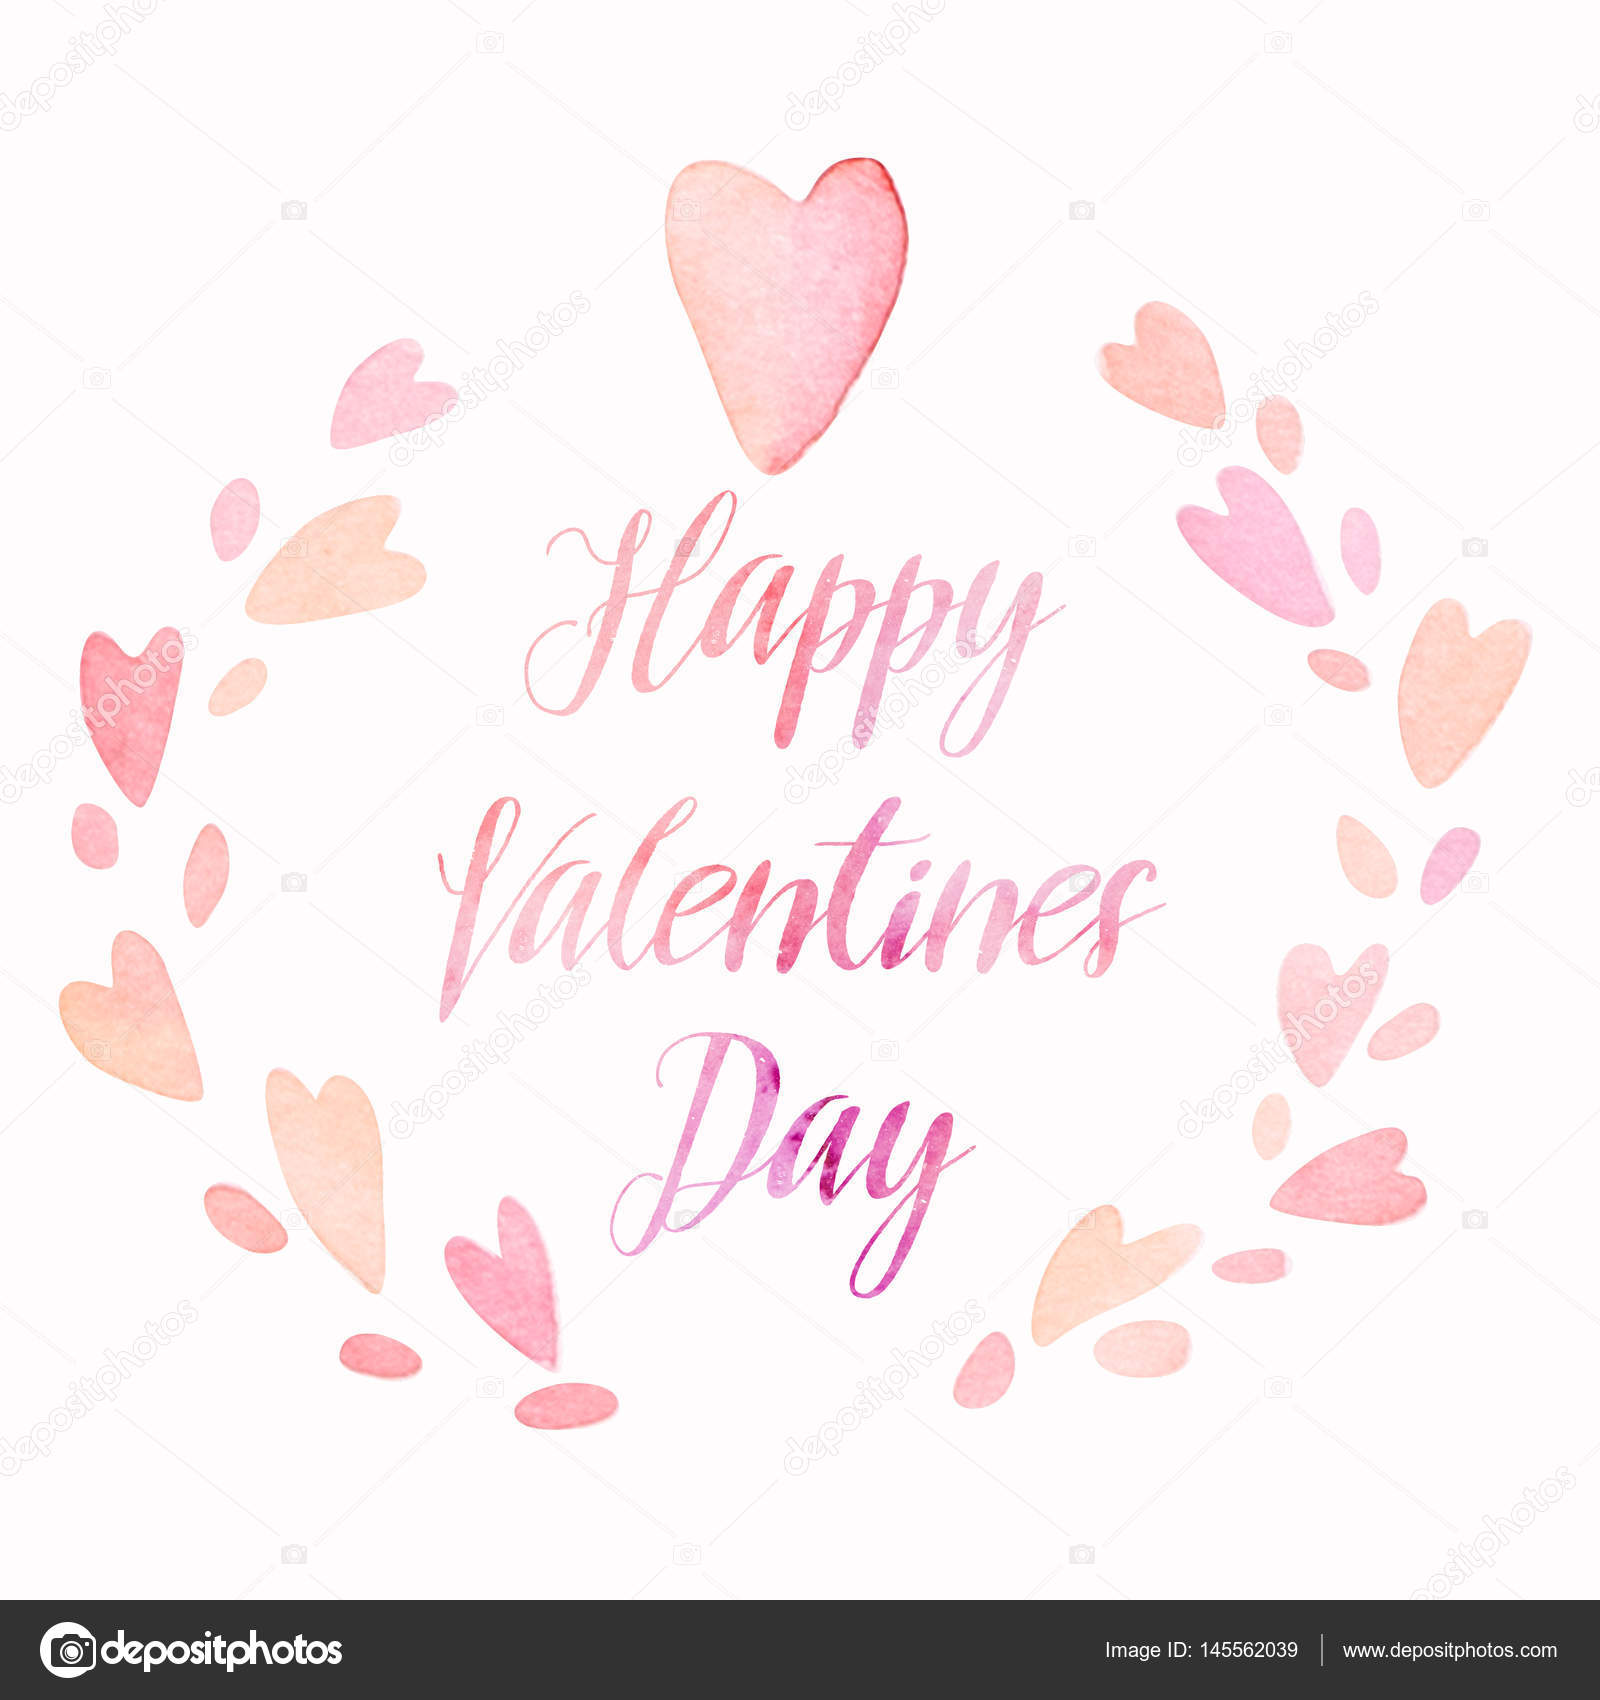 Valentines Day Cute Kawaii Watercolor Hearts Wreath With Lettering, Holiday  Card Layout U2014 Stock Photo